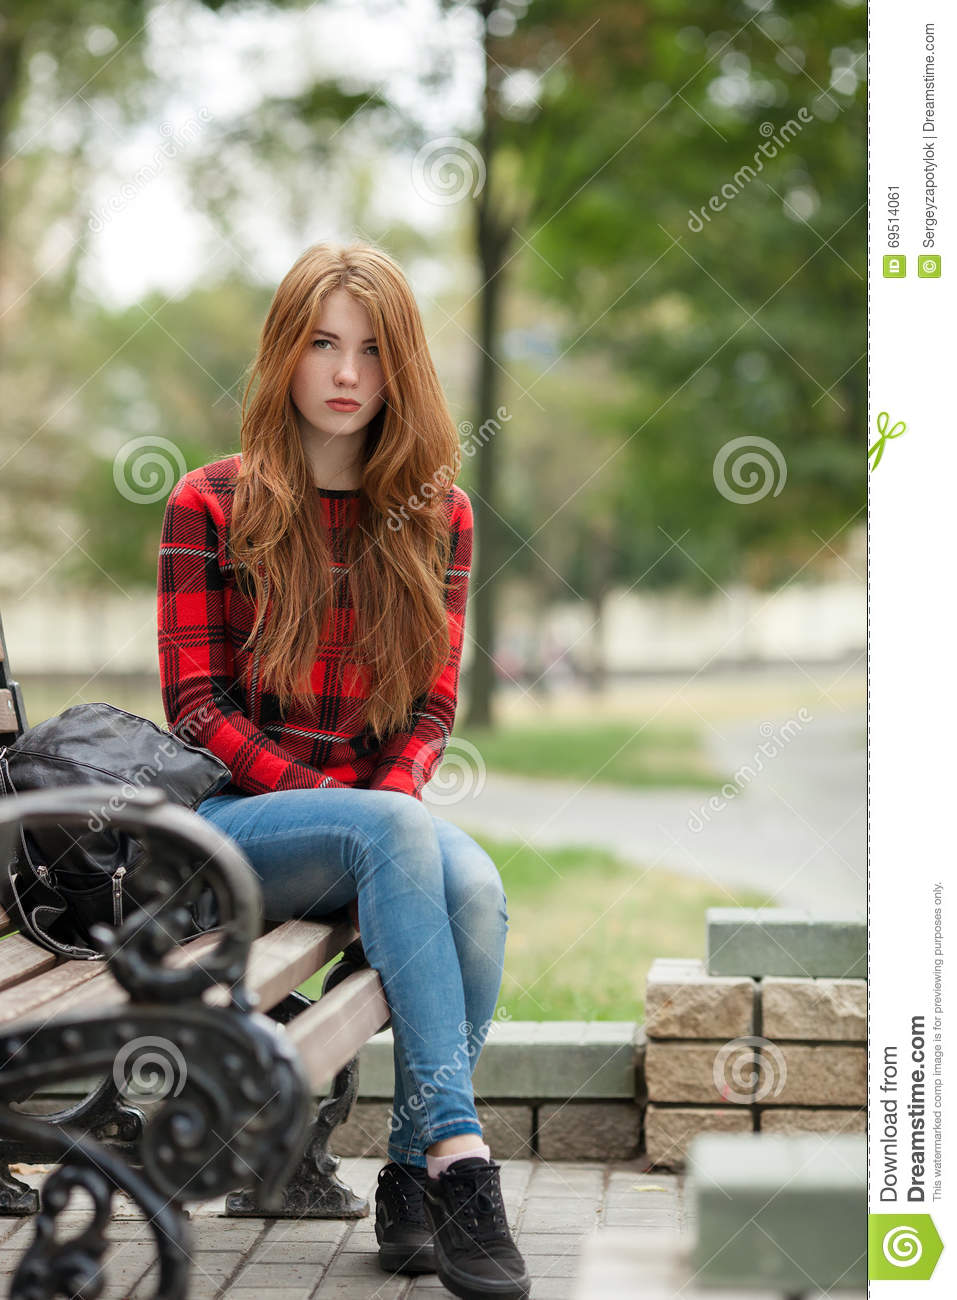 Question something redhead on bench